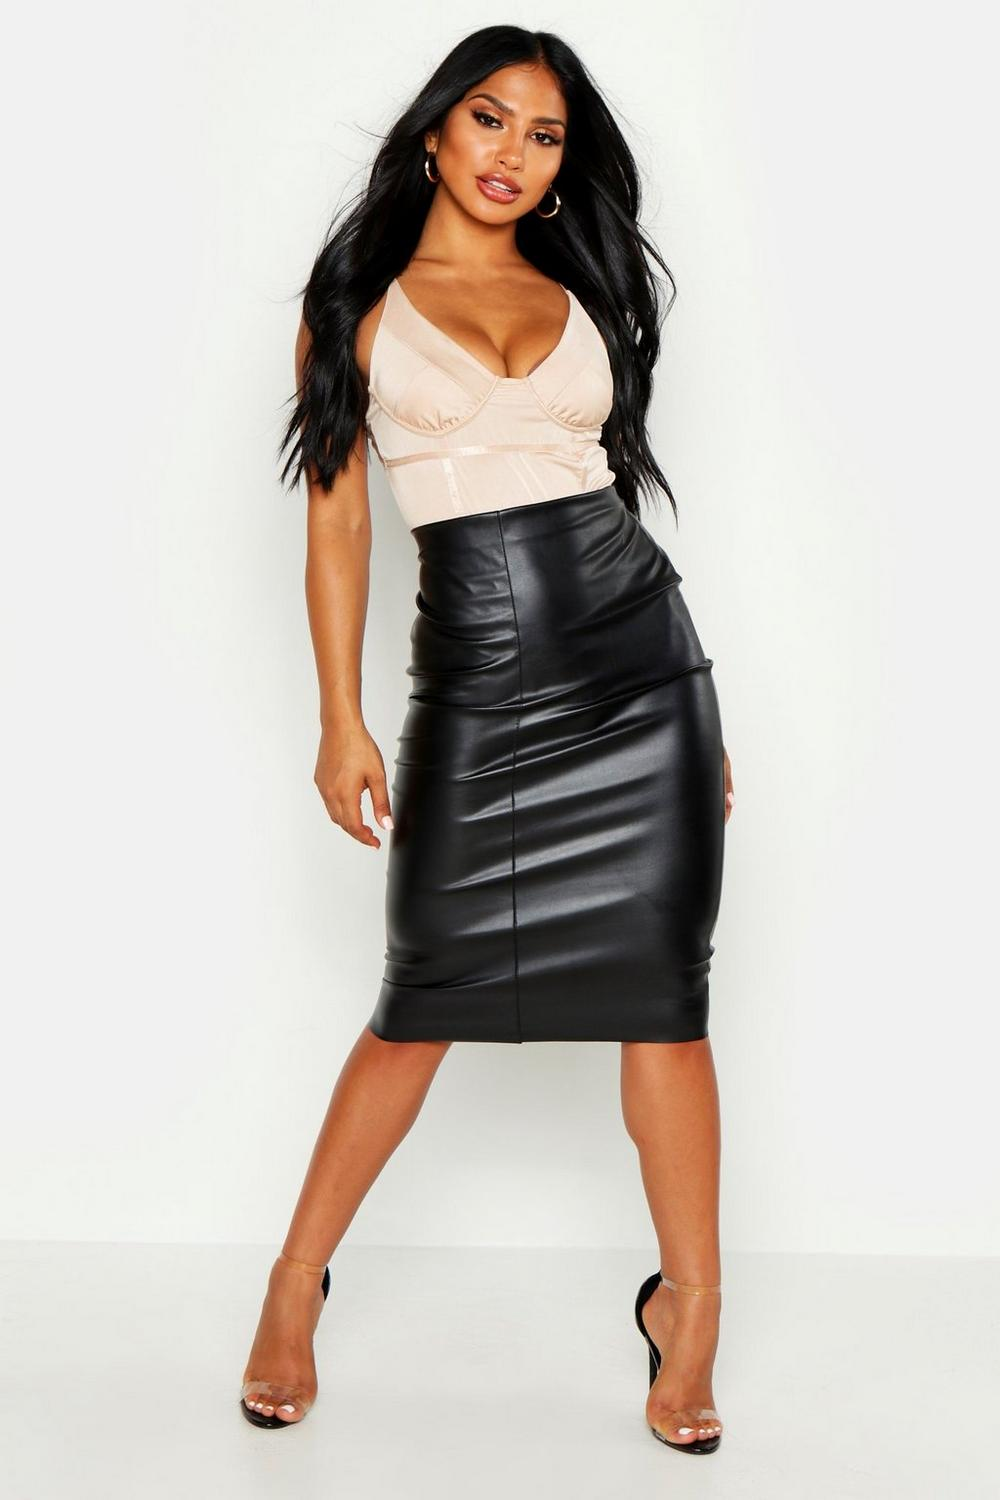 New Brunette Woman In Black Skirt And Jacket Sitting On Cube Stock Photo  Image